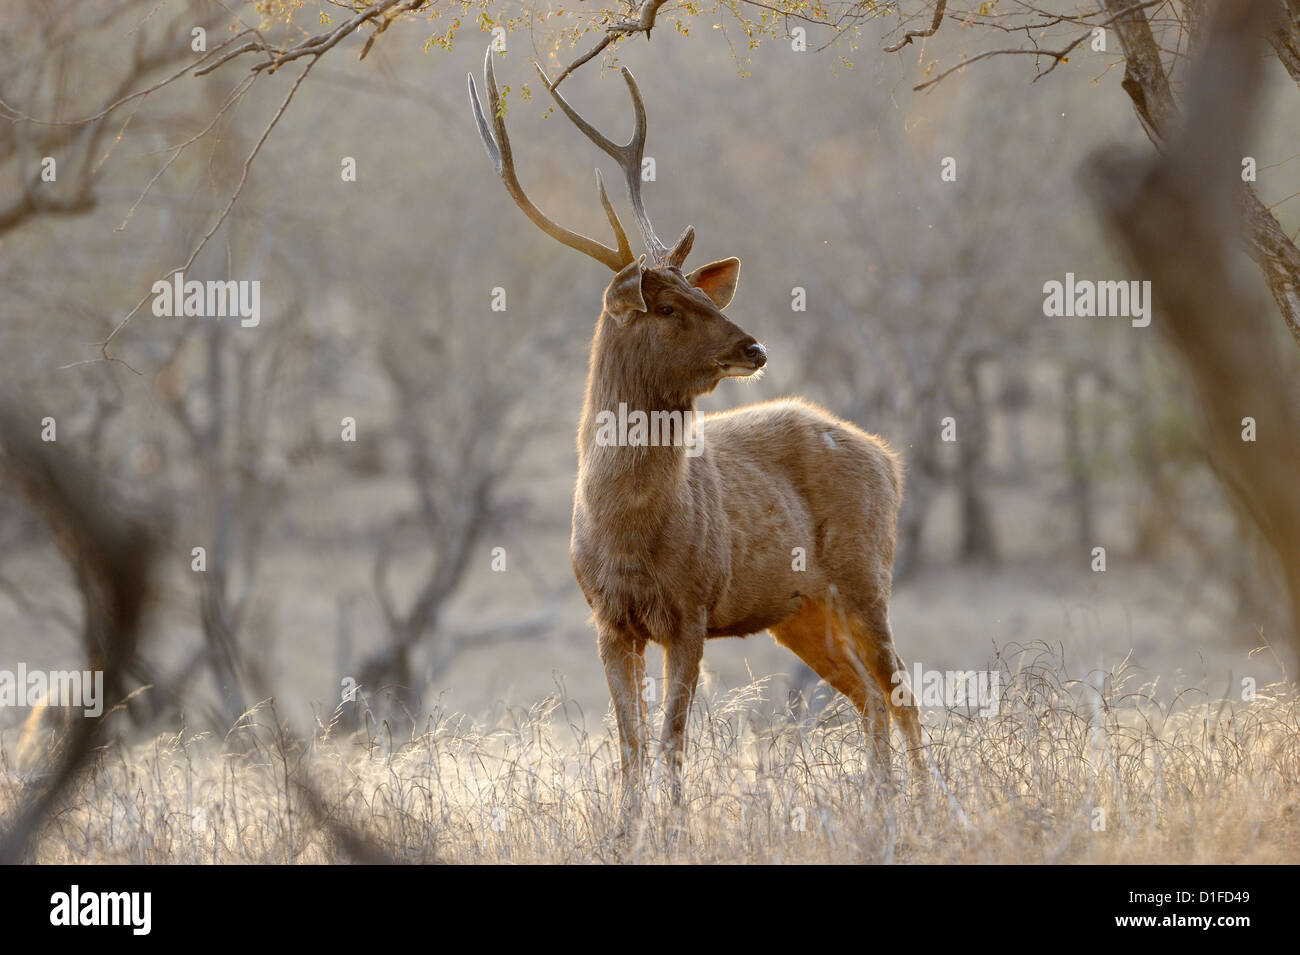 Sambar Deer scratching his antlers at tree. - Stock Image